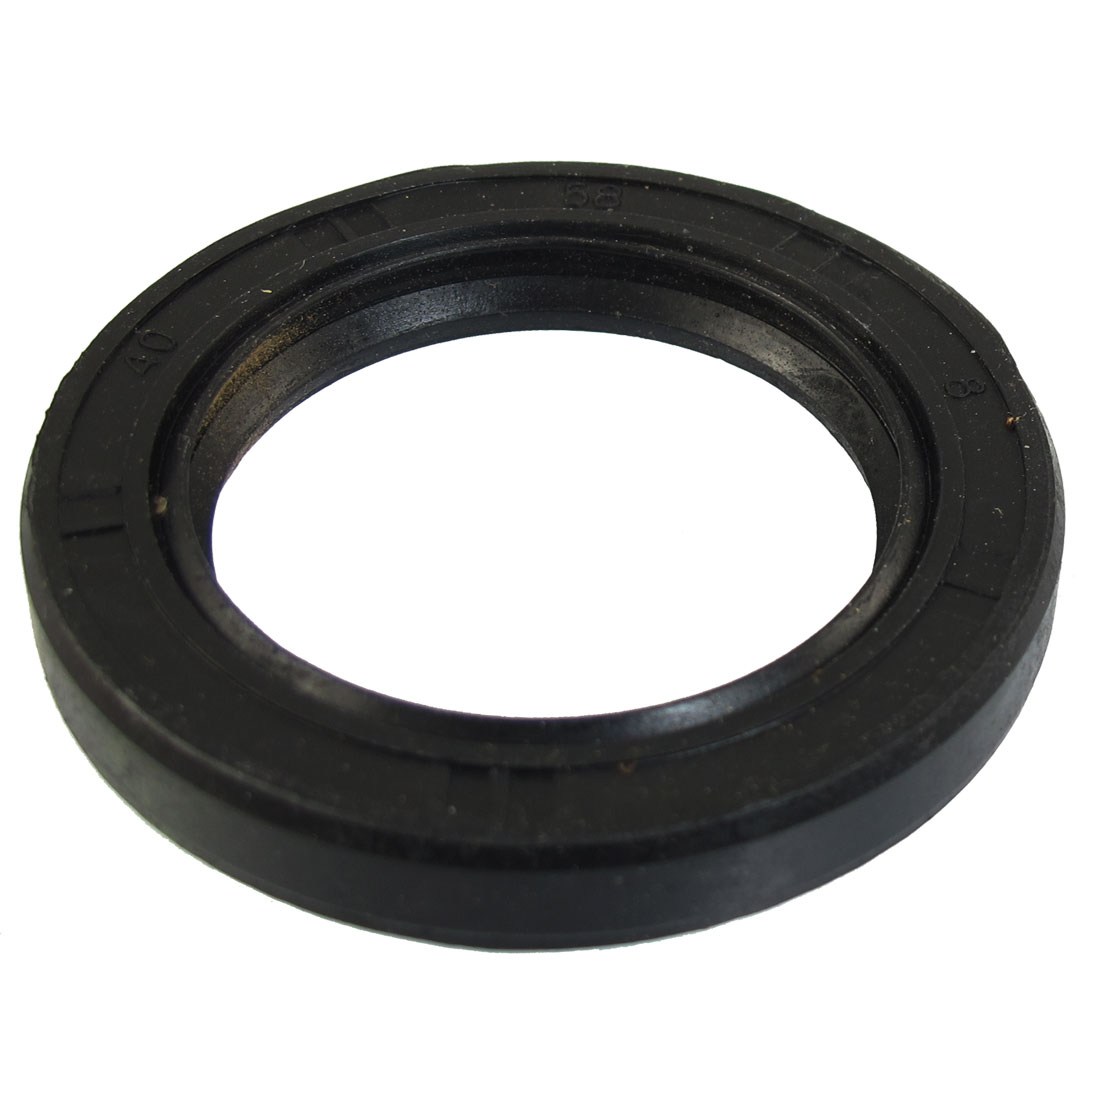 Black Nitrile Rubber Dual Lips Oil Shaft Seal TC 40mm x 58mm x 8mm